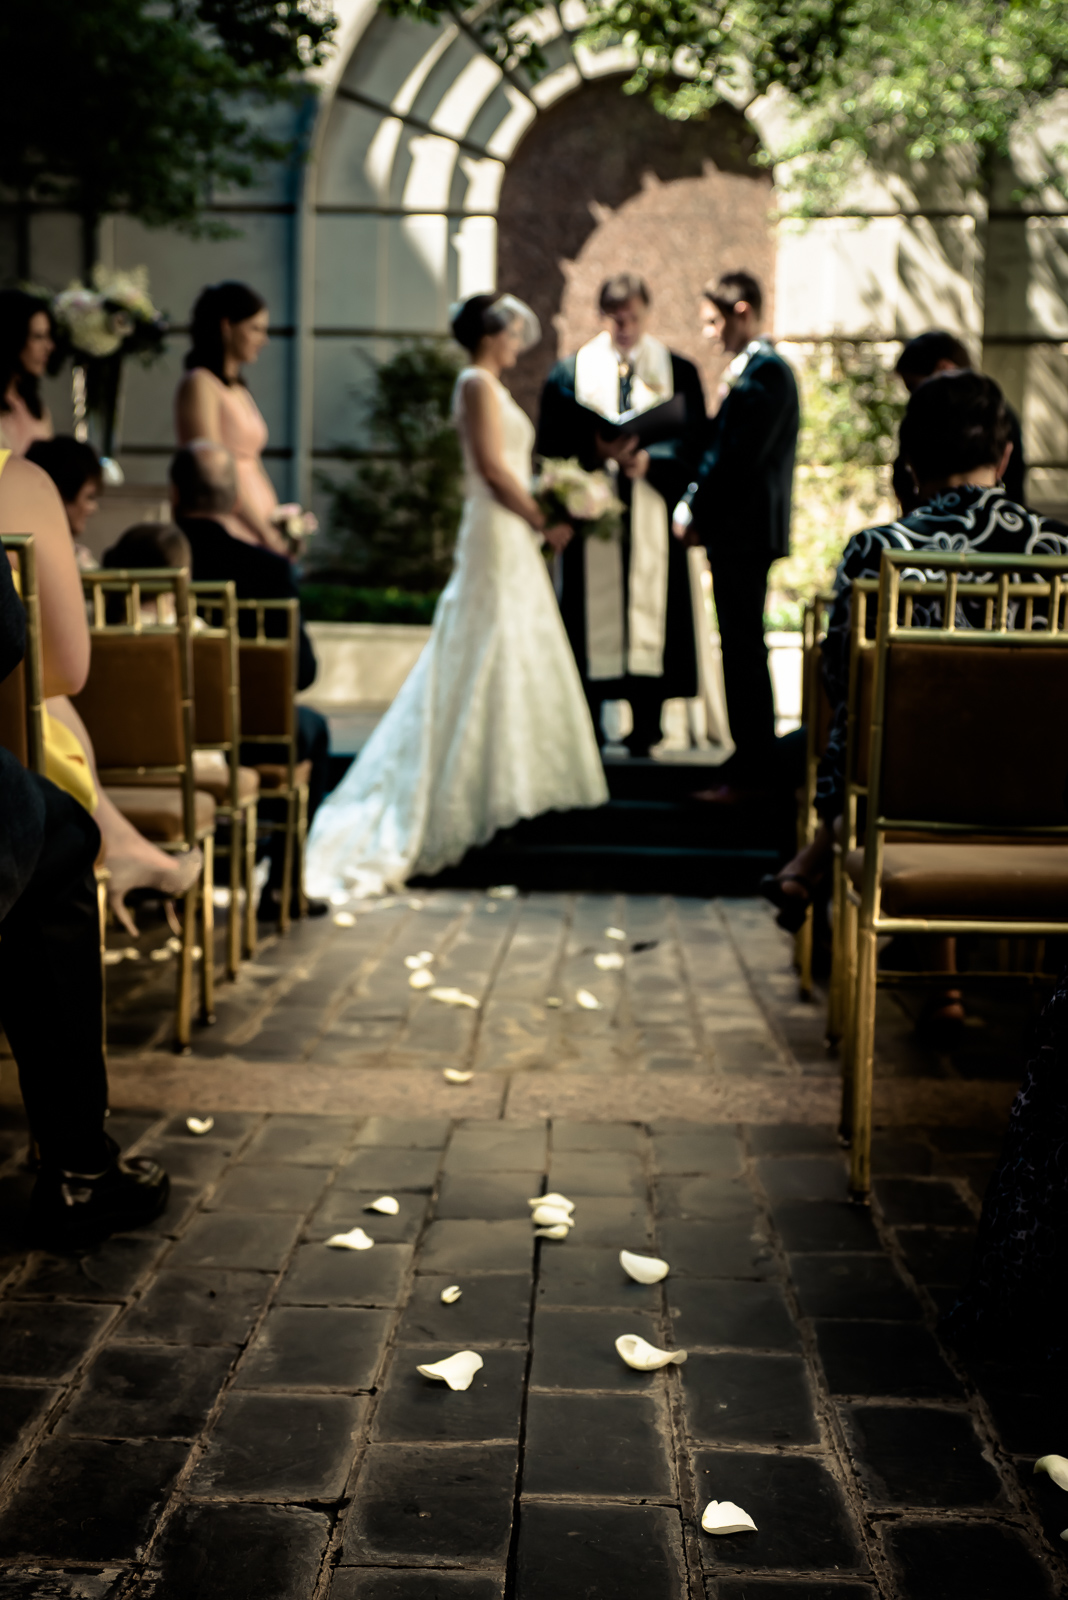 Michael-Napier-Weddings-Sprague-Stanley Wedding-Album-3 (22).jpg